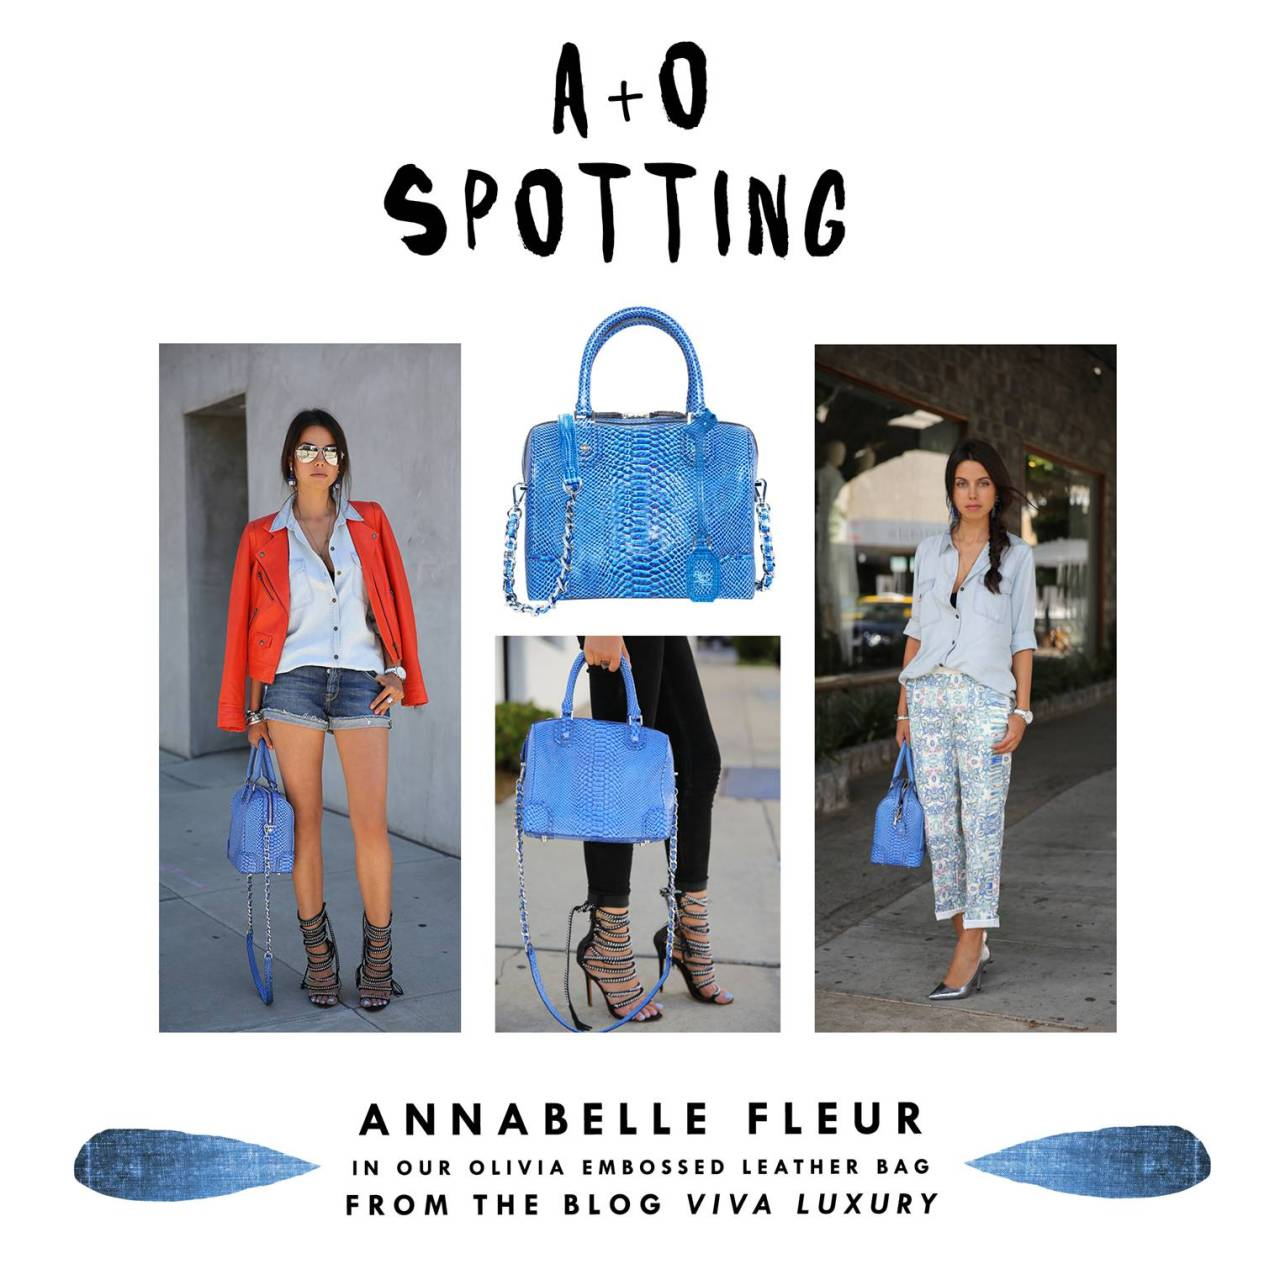 A + O GIRLS Blogging beauty, Annabelle Fleur styles up our Olivia bag not one, not two, but three lovely ways! She's proven that this snake embossed beauty is a total must for spring/summer!